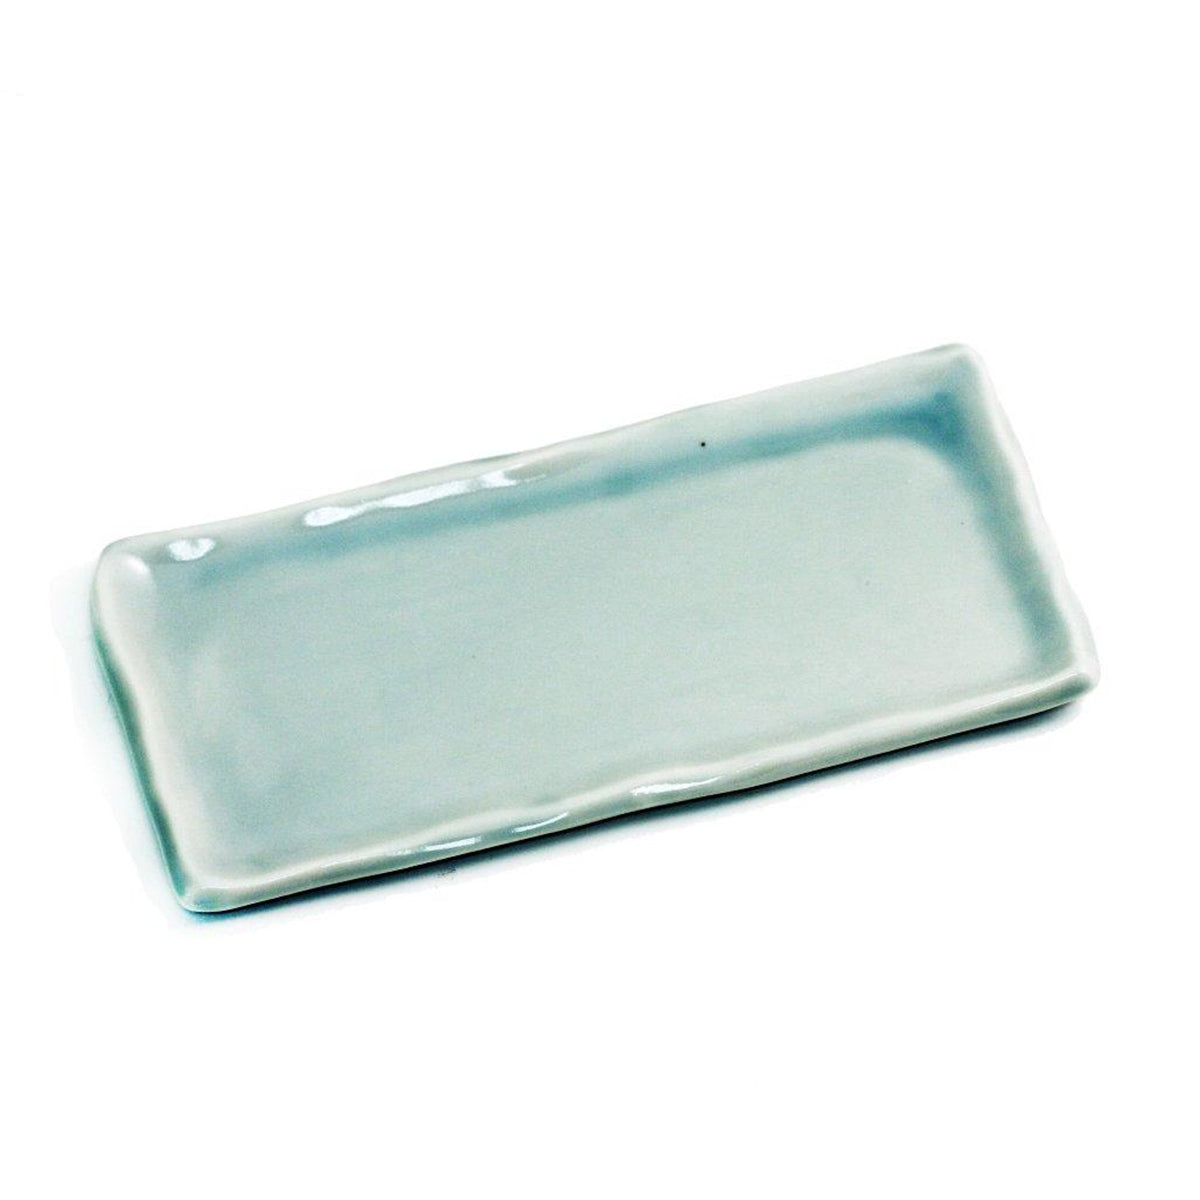 "Wavy Light Sage Rectangular Plate 8.66"" x 4.33"""